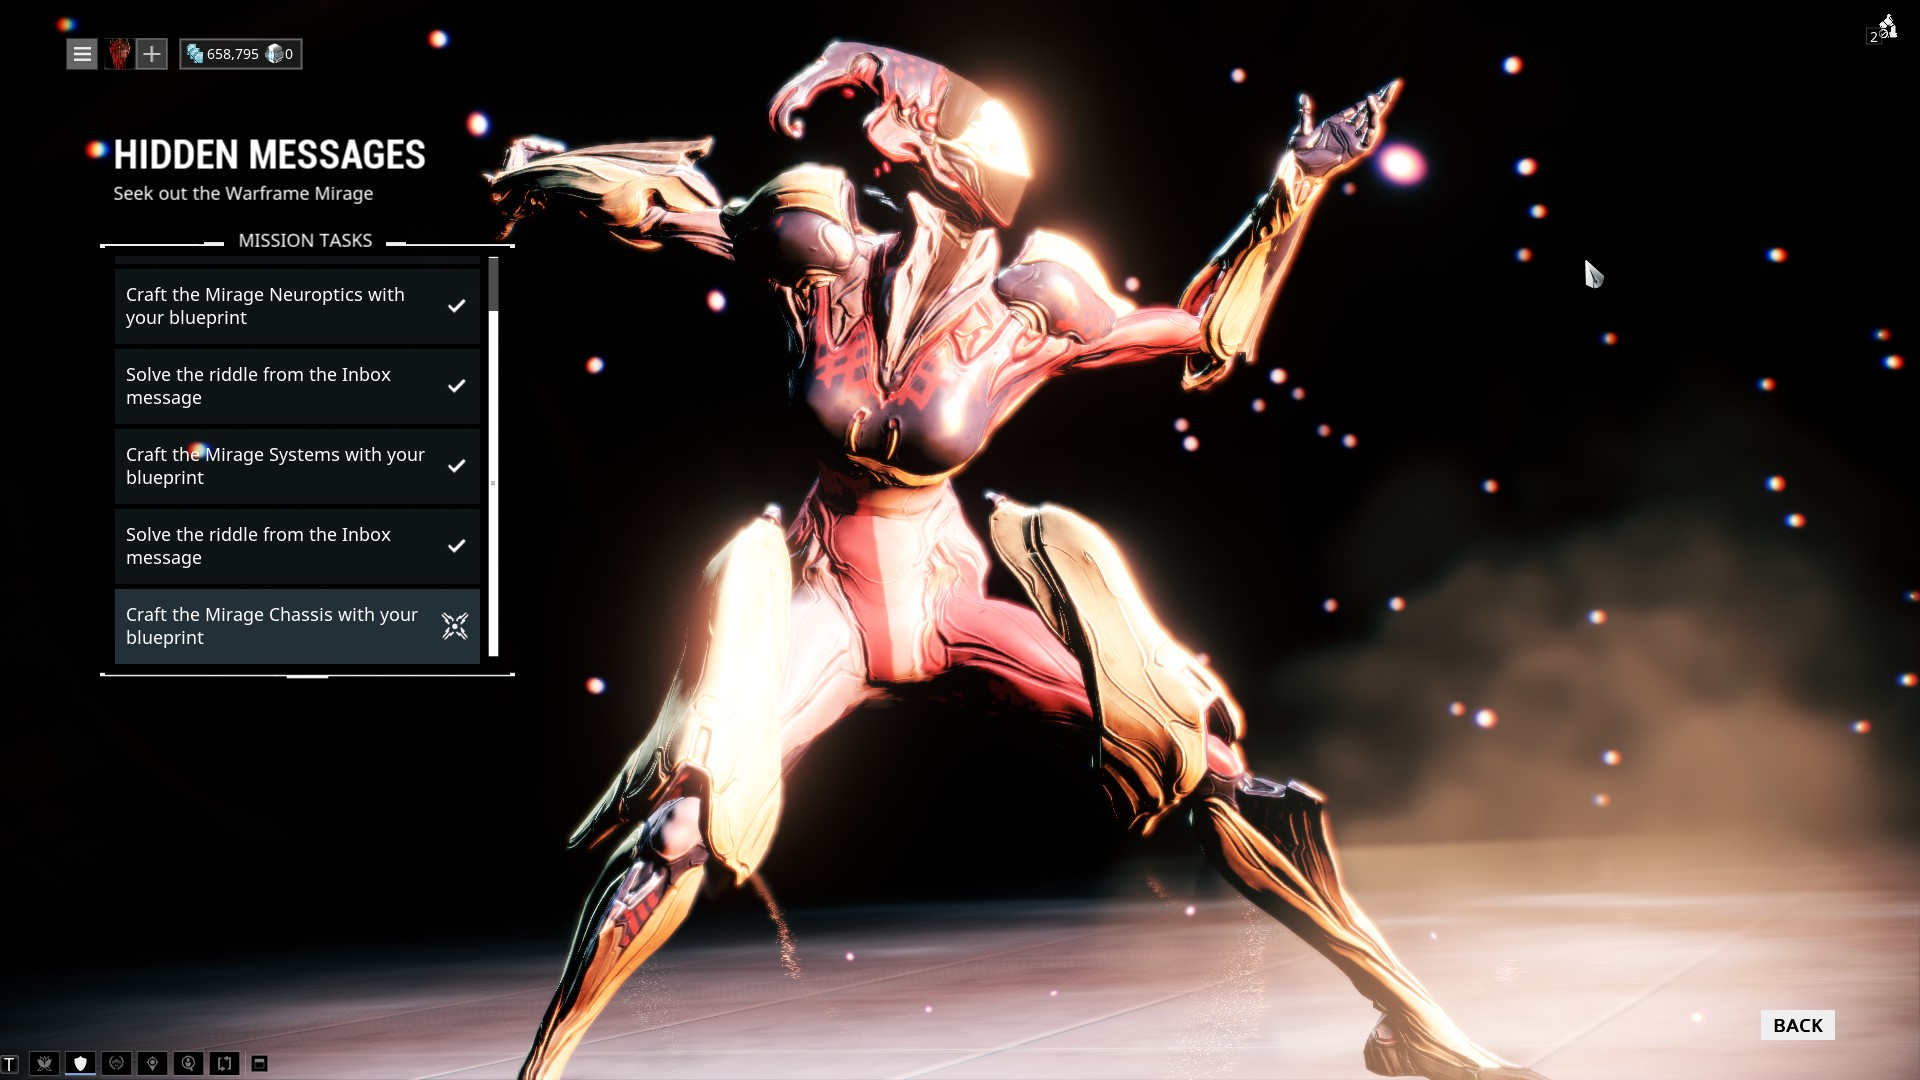 Hidden Messages Bug Mission Warframe Forums Short and straight to the point. warframe forums